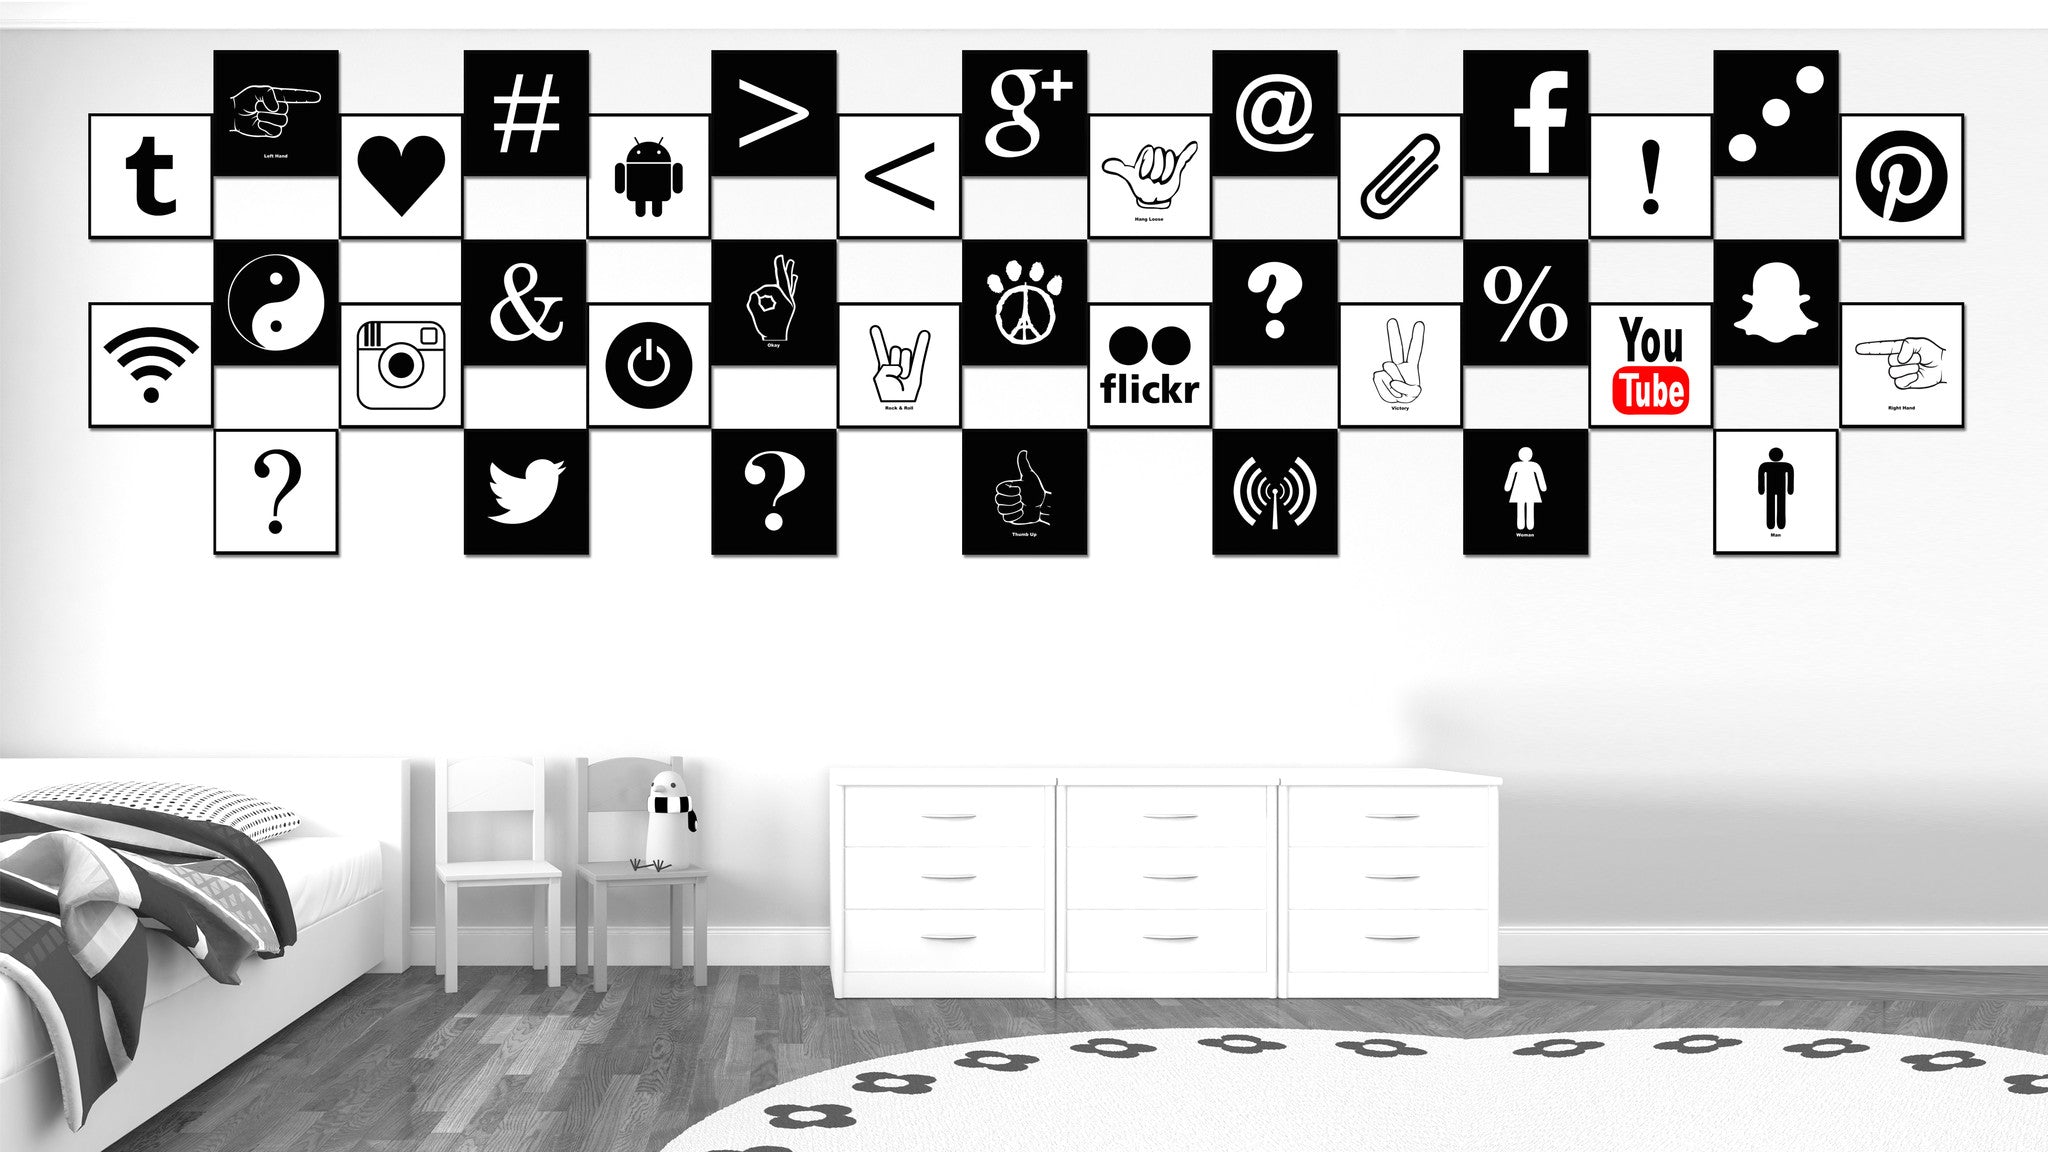 Hangloose Social Media Icon Canvas Print Picture Frame Wall Art Home Decor